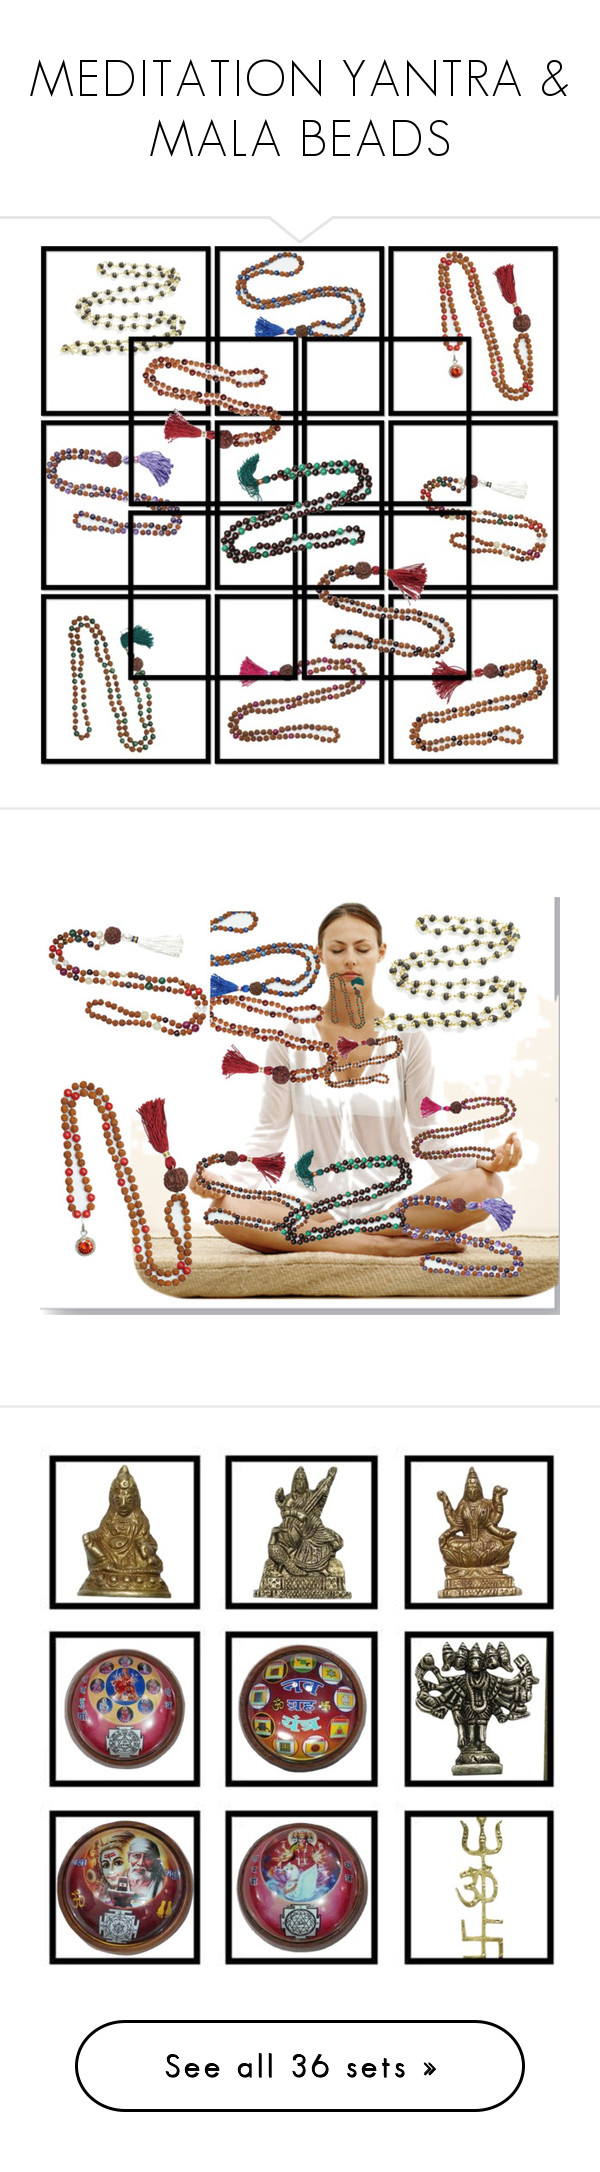 """""""MEDITATION YANTRA & MALA BEADS"""" by lavanyas-trendzs ❤ liked on Polyvore featuring necklace, meditation, Mala, indiatrendzs, yogamala, interior, interiors, interior design, home and home decor"""